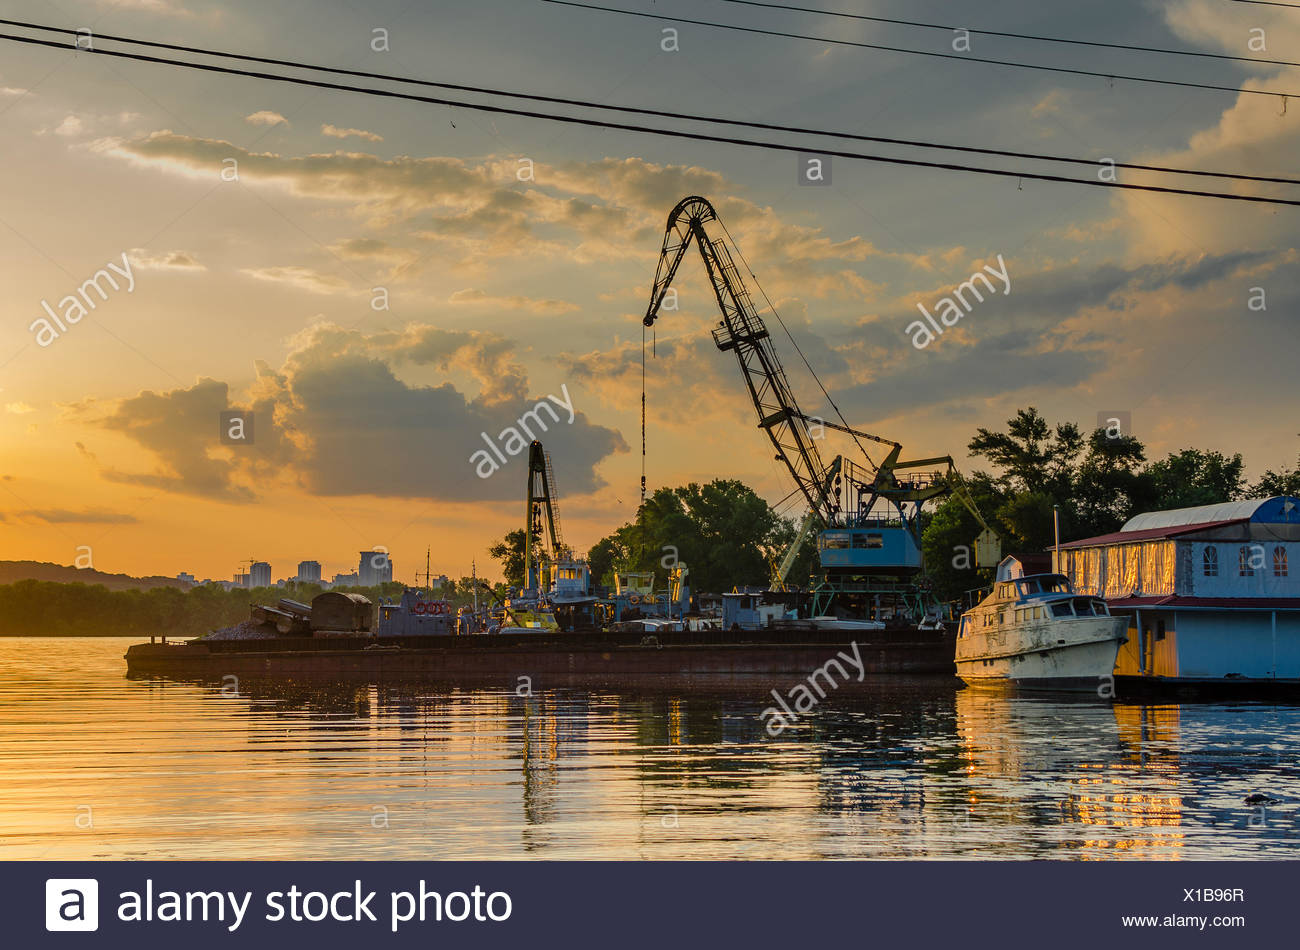 Ukraine, Kyiv, Old Dock and ship - Stock Image